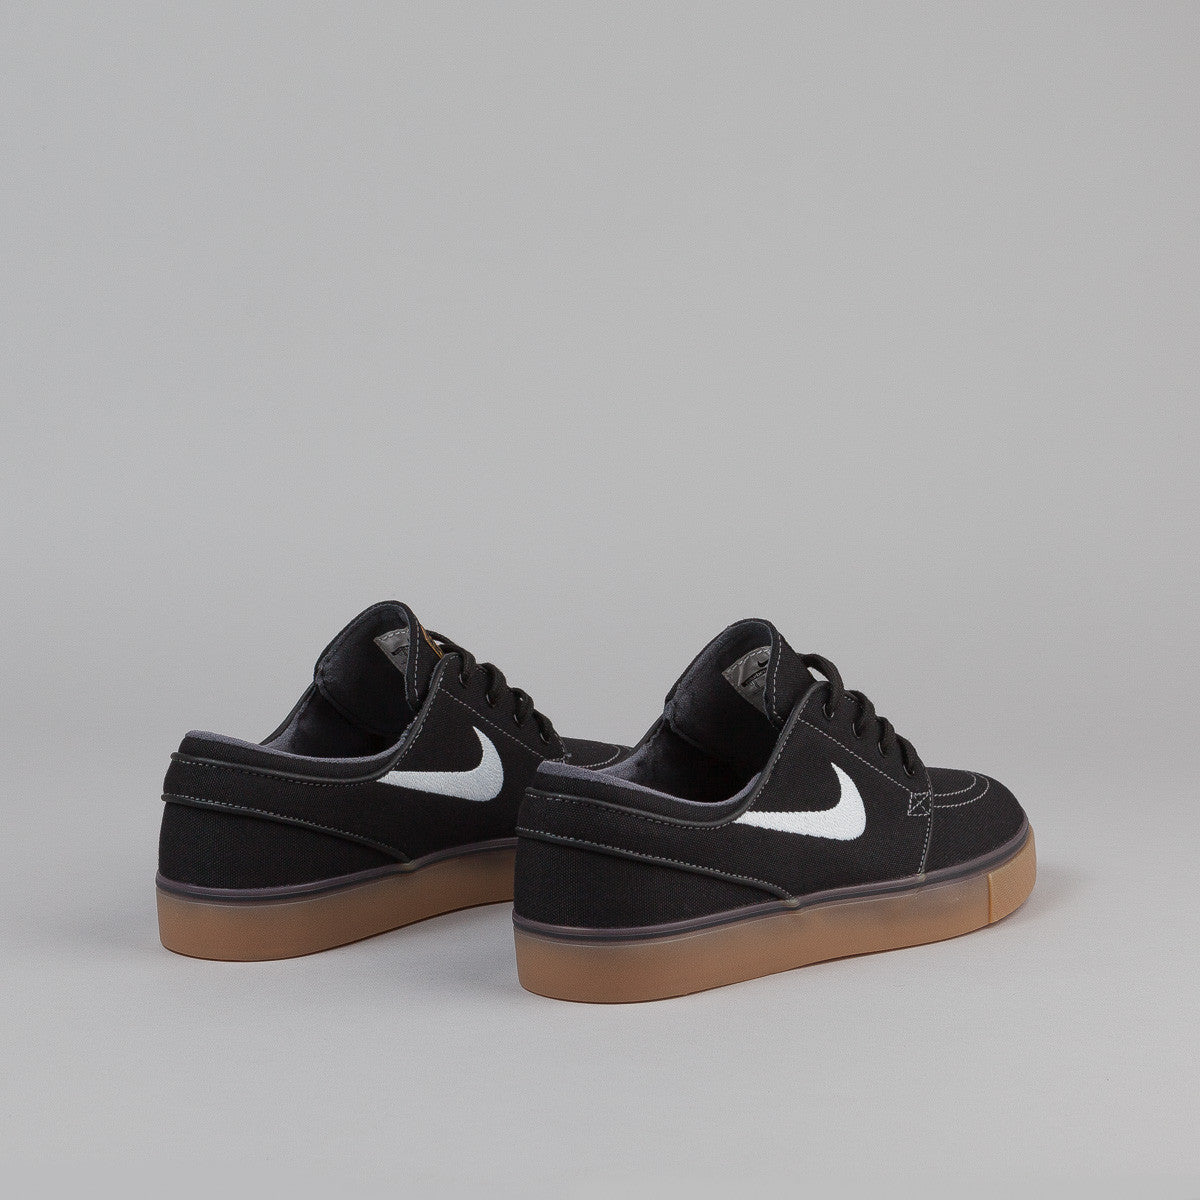 Nike SB Stefan Janoski Canvas Shoes - Black / White - Metallic Gold - Gum Light Brown